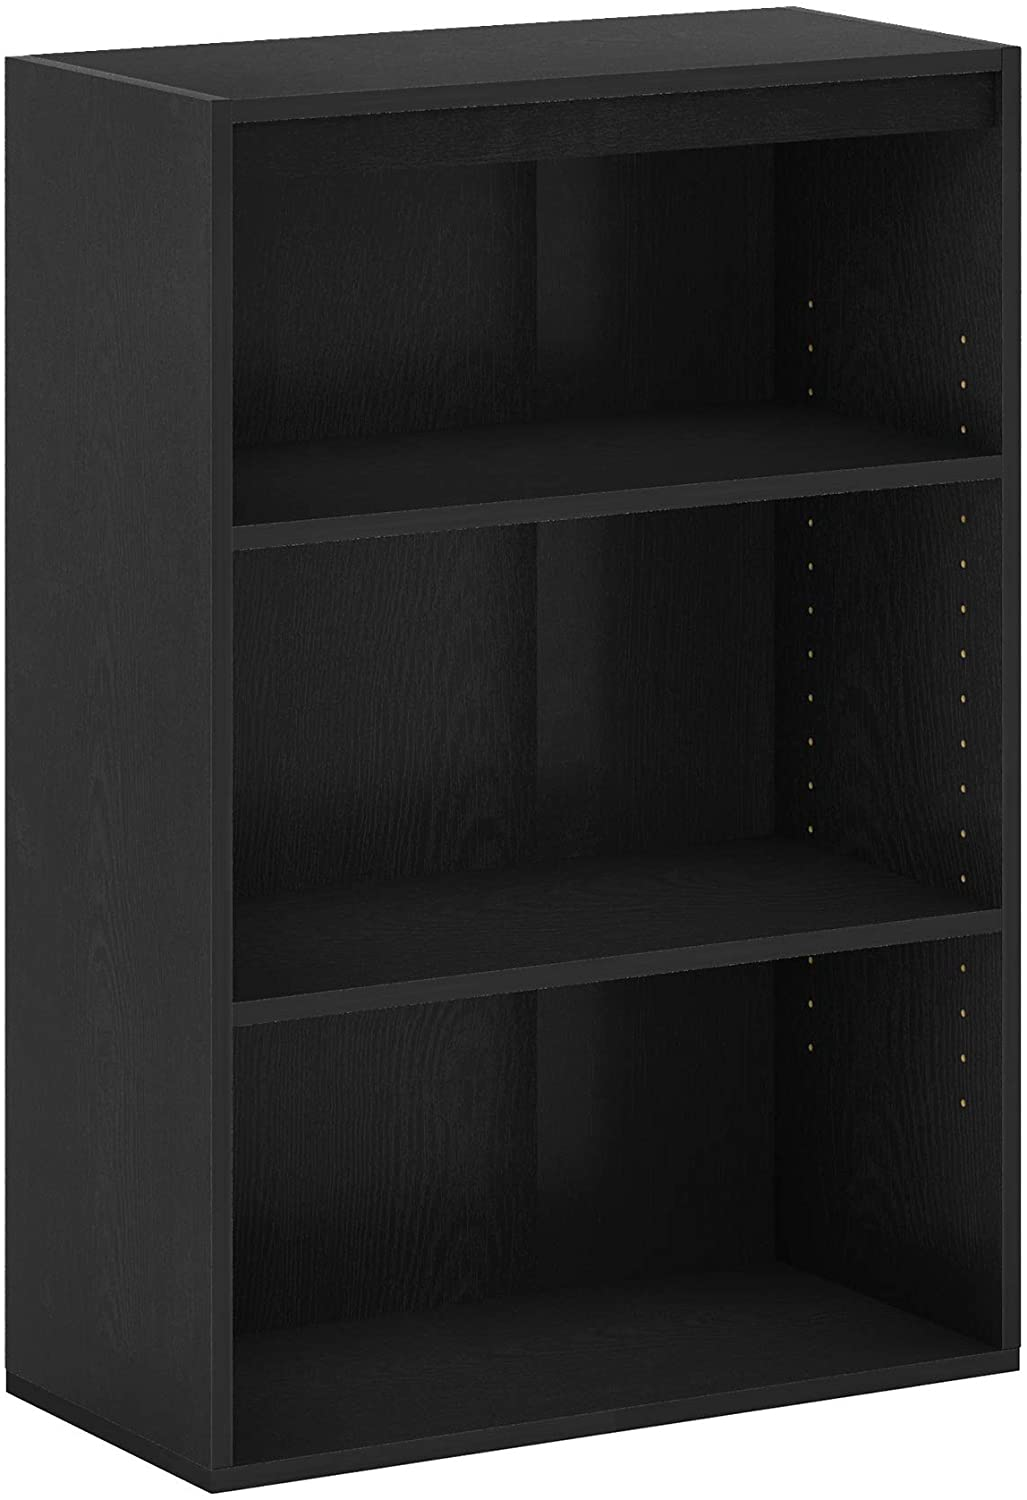 FURINNO Pasir 3-Tier Open Shelf, Blackwood